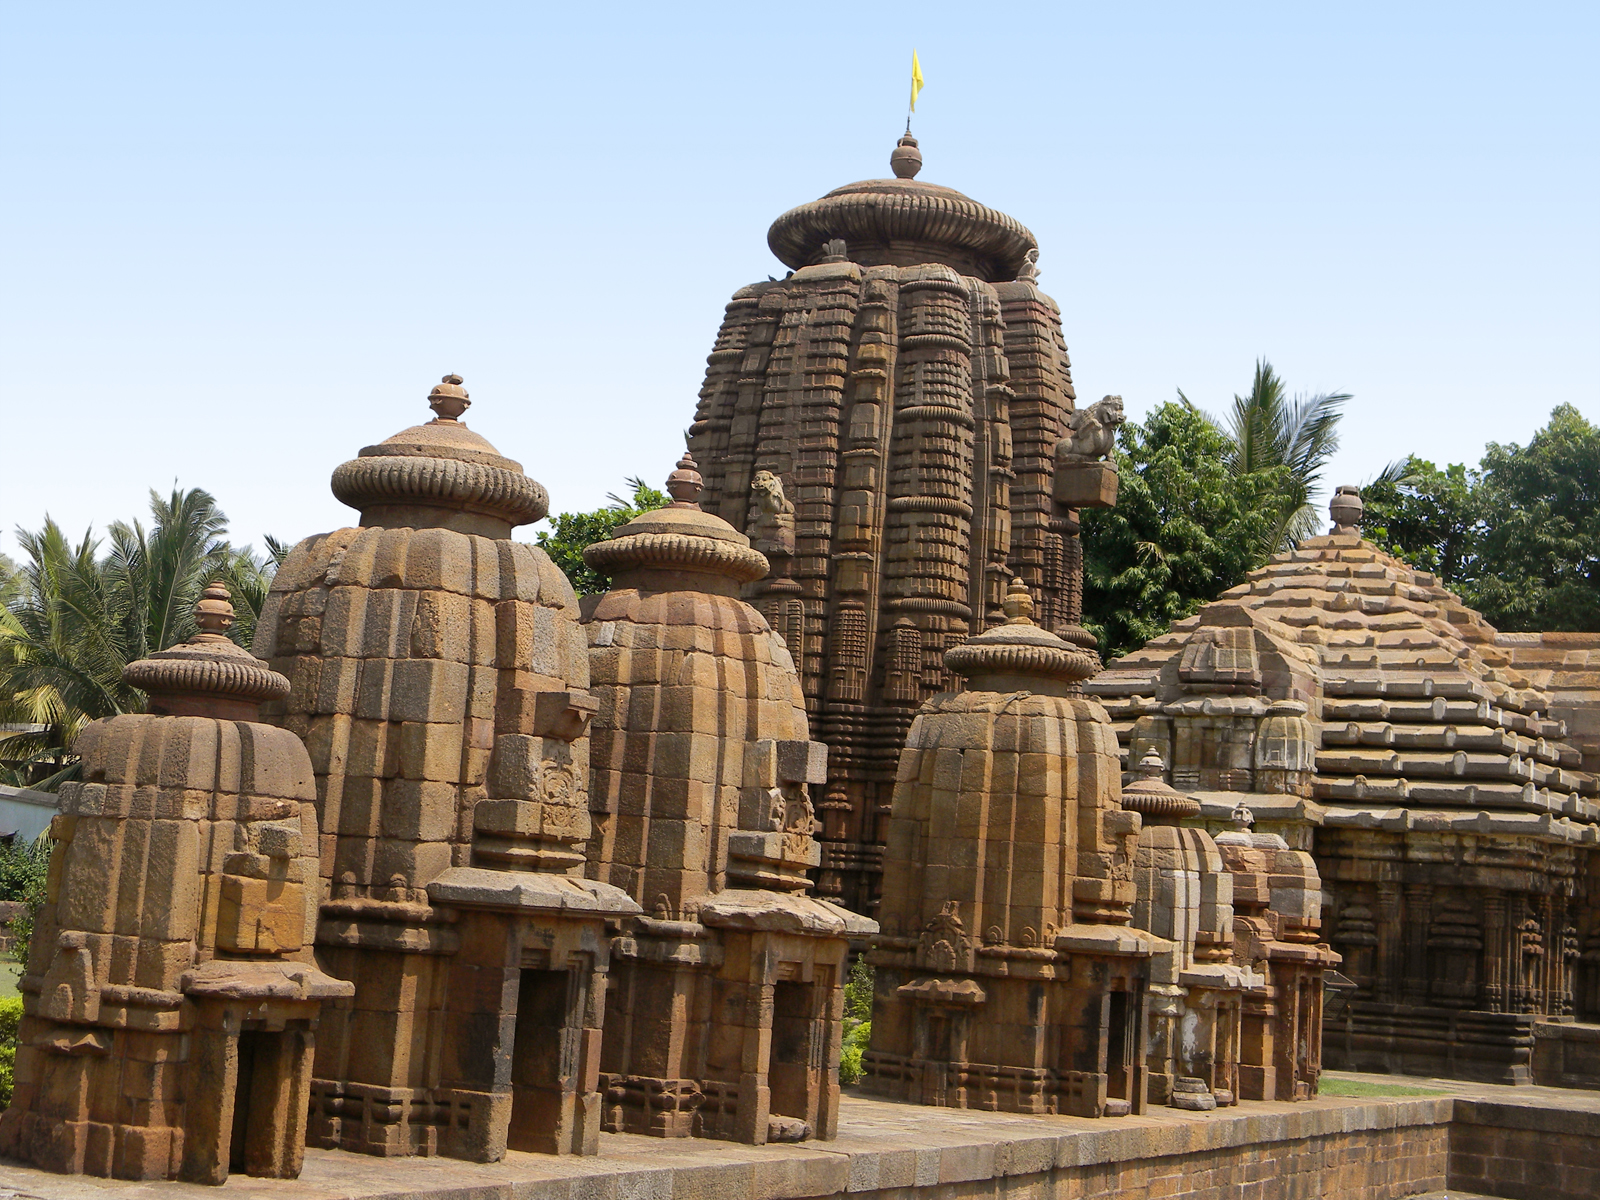 File:Mukteswar Temple 1.jpg - Wikimedia Commons